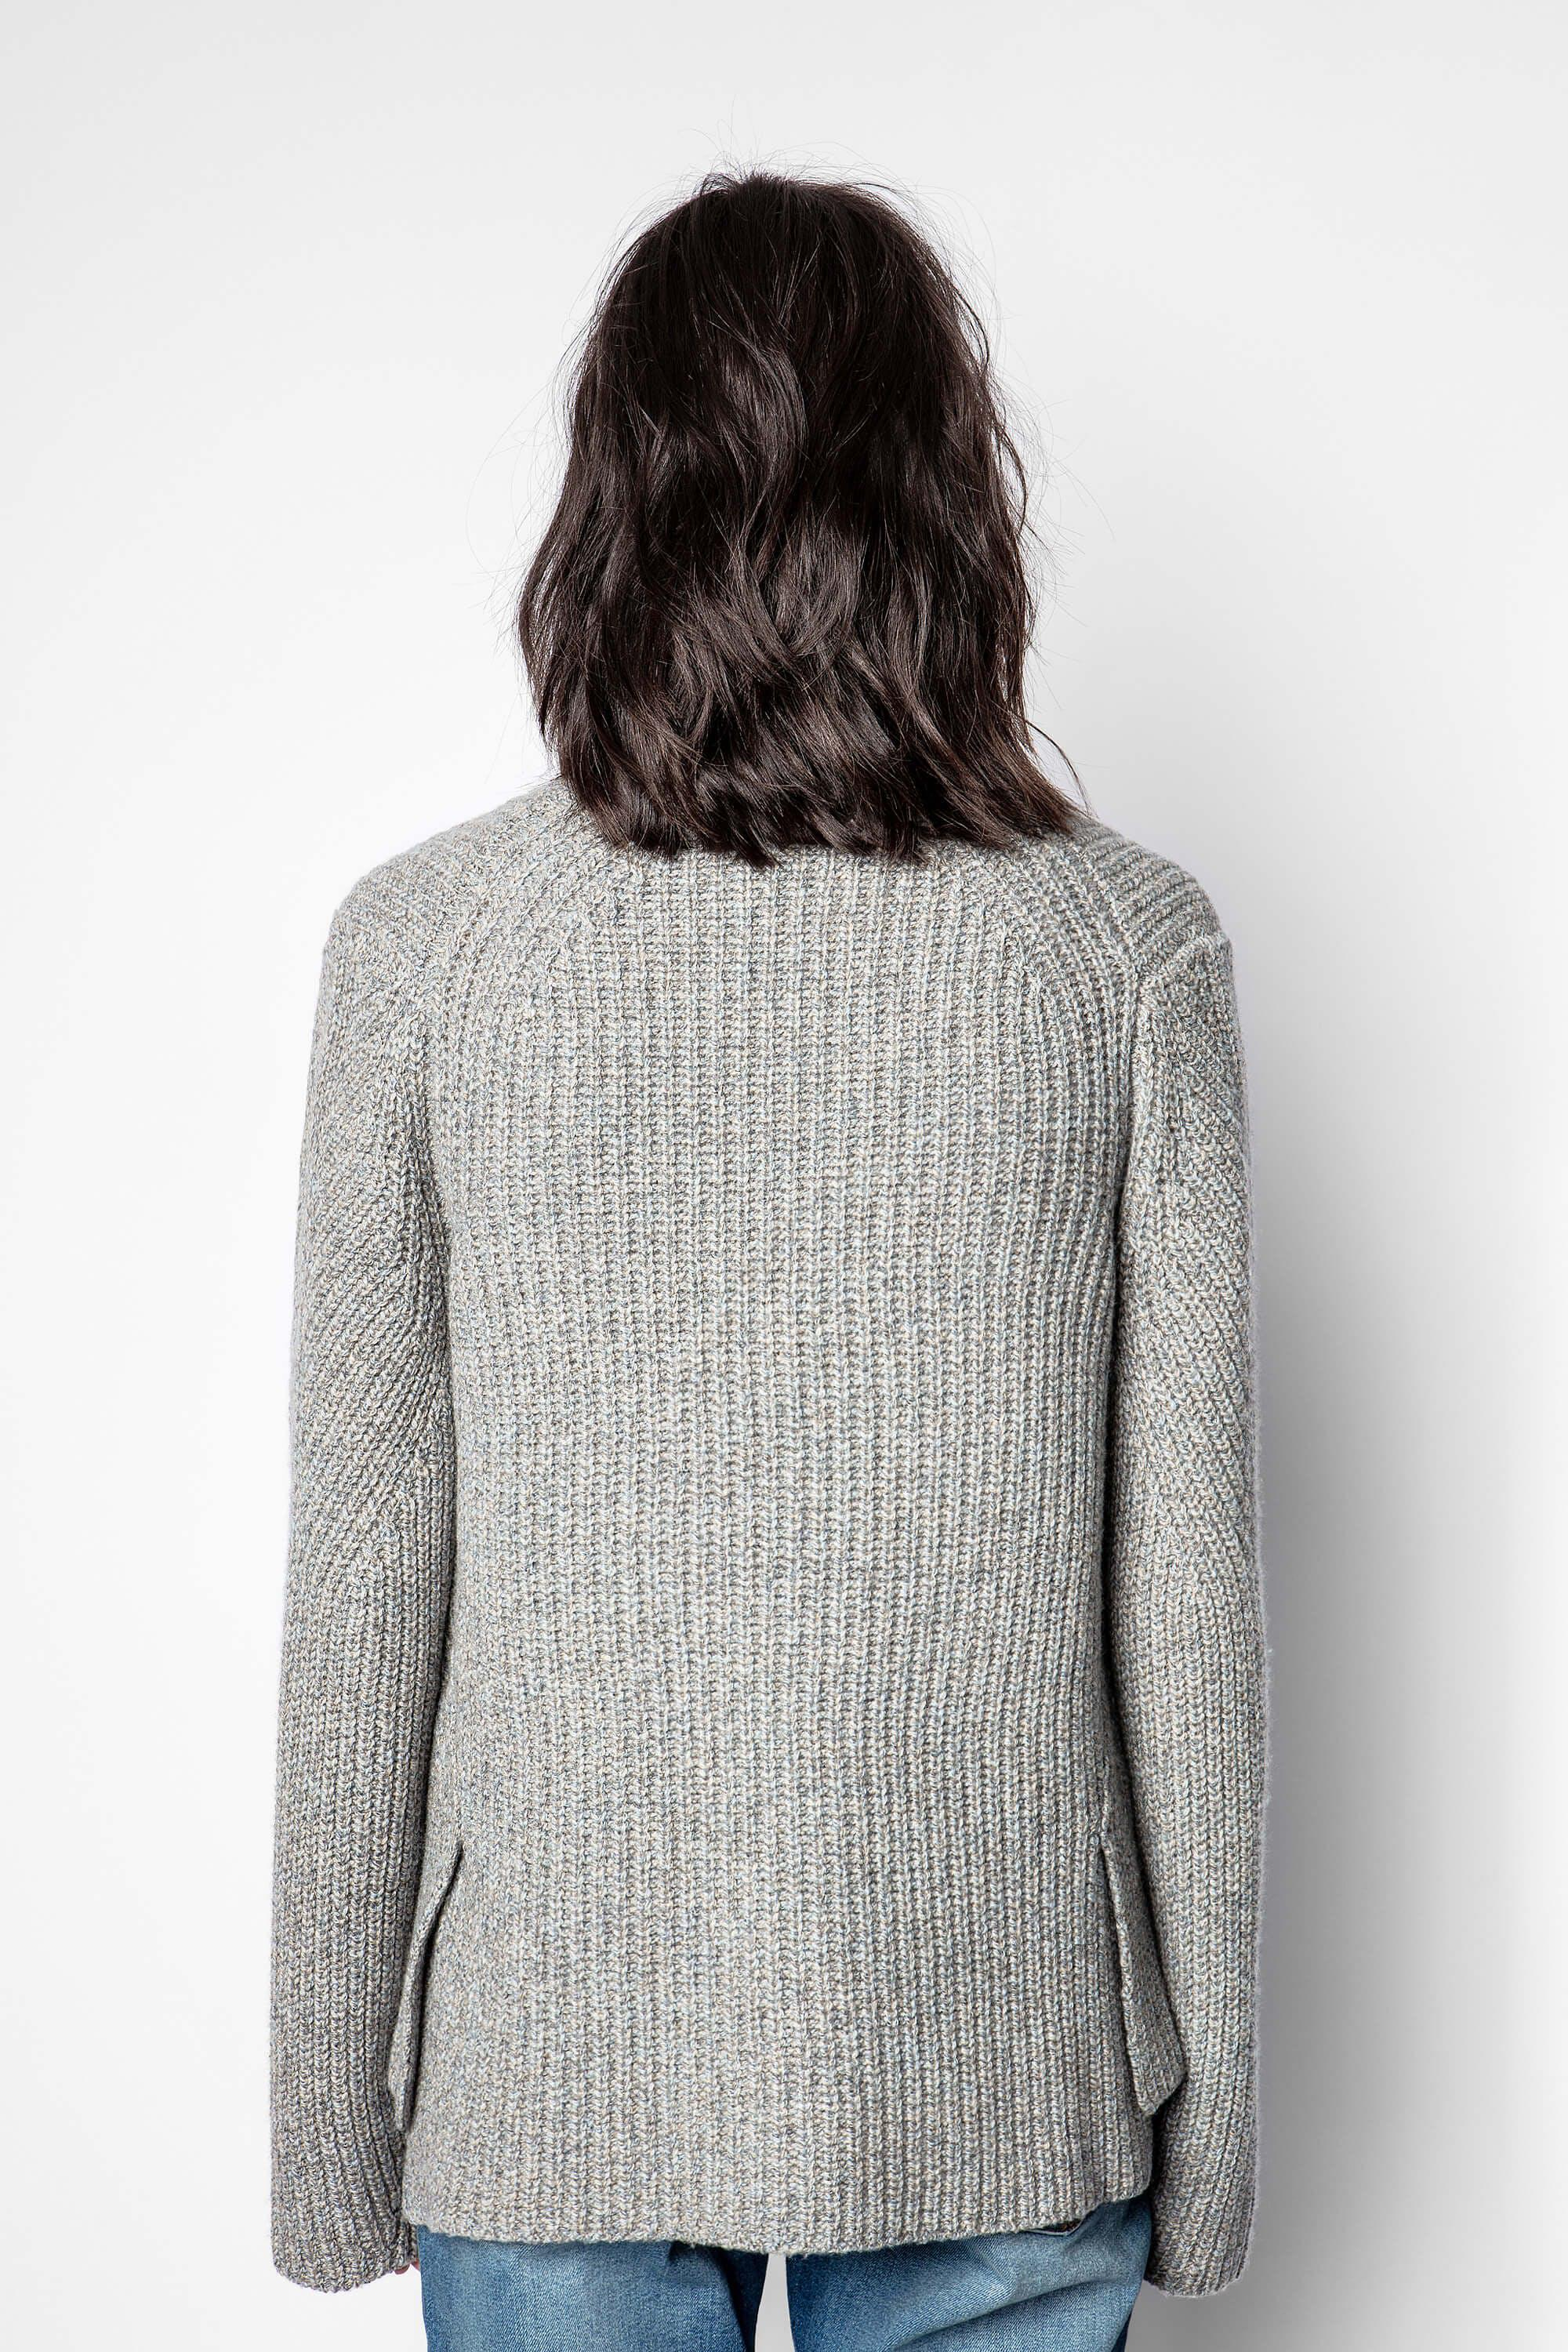 Dilly Recycled Cardigan 3